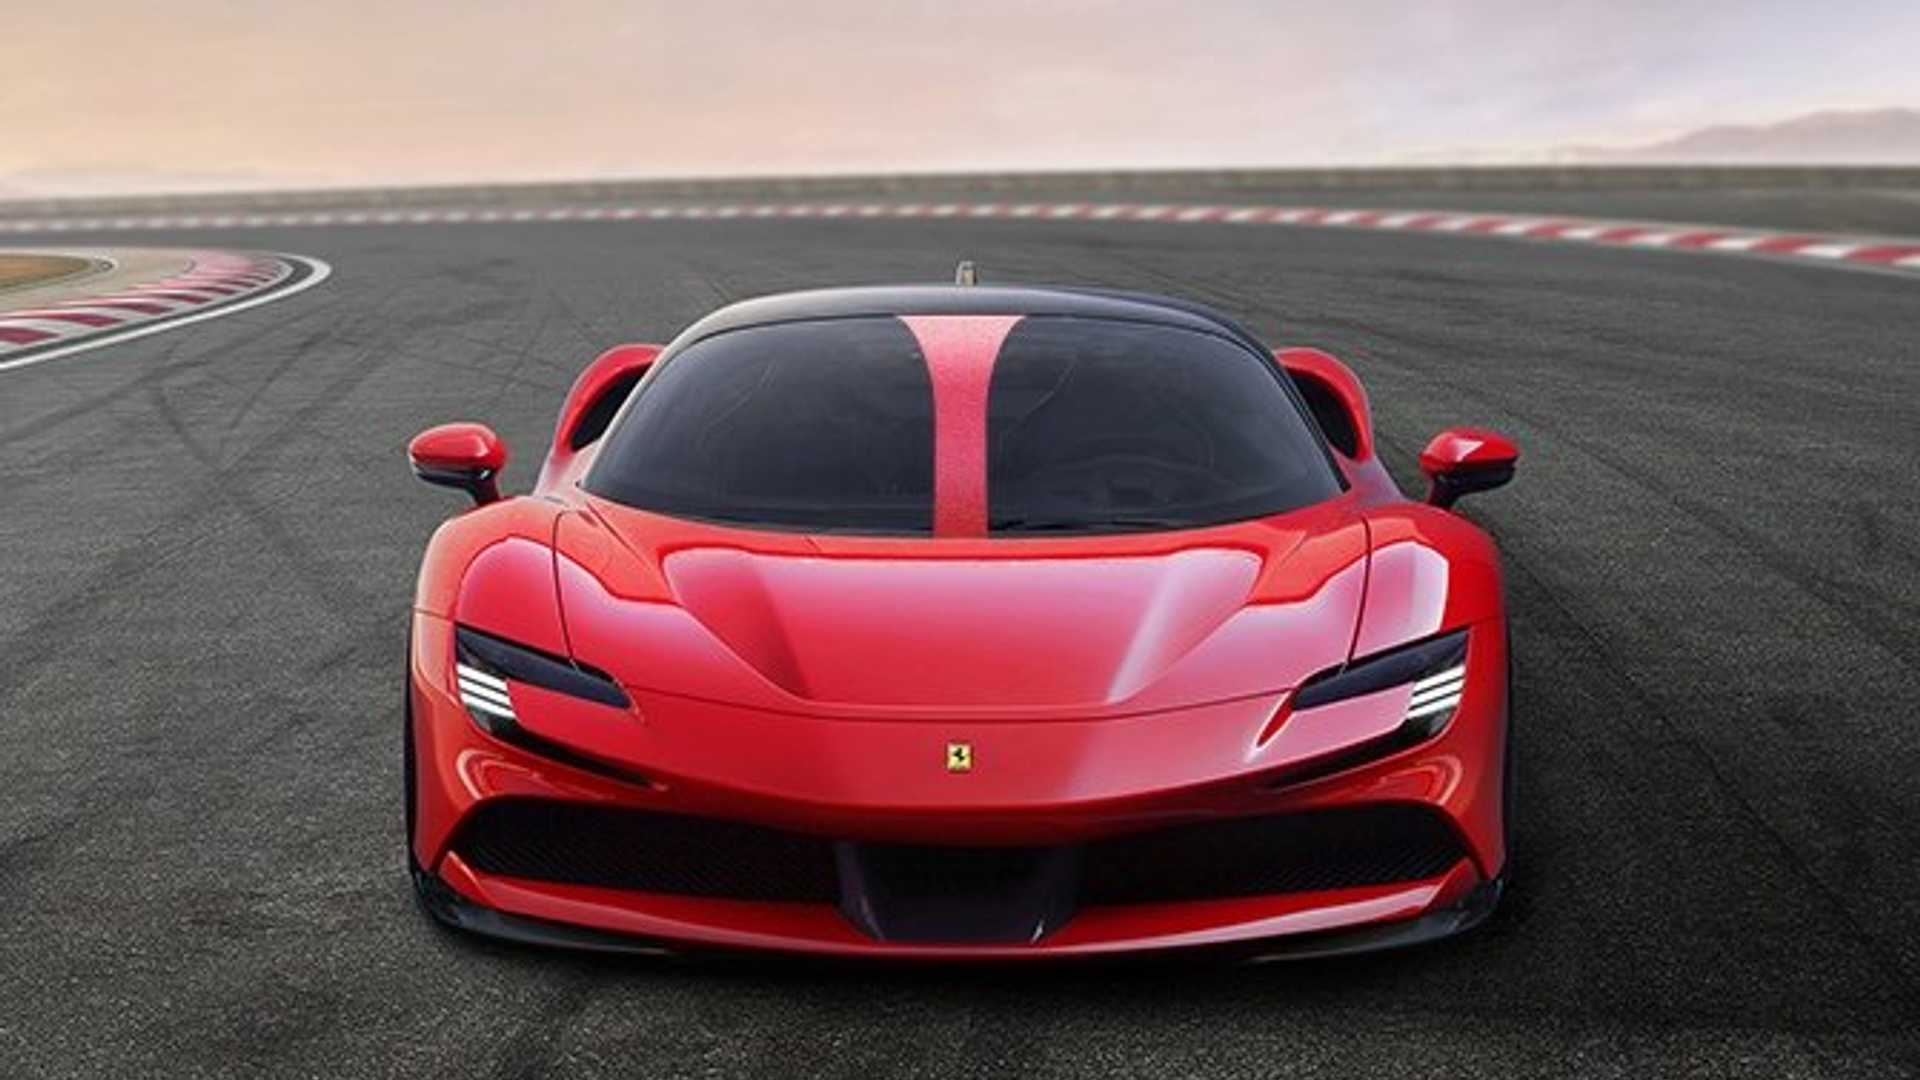 Ferrari Patent Shows F1 Derived Halo For Road Cars